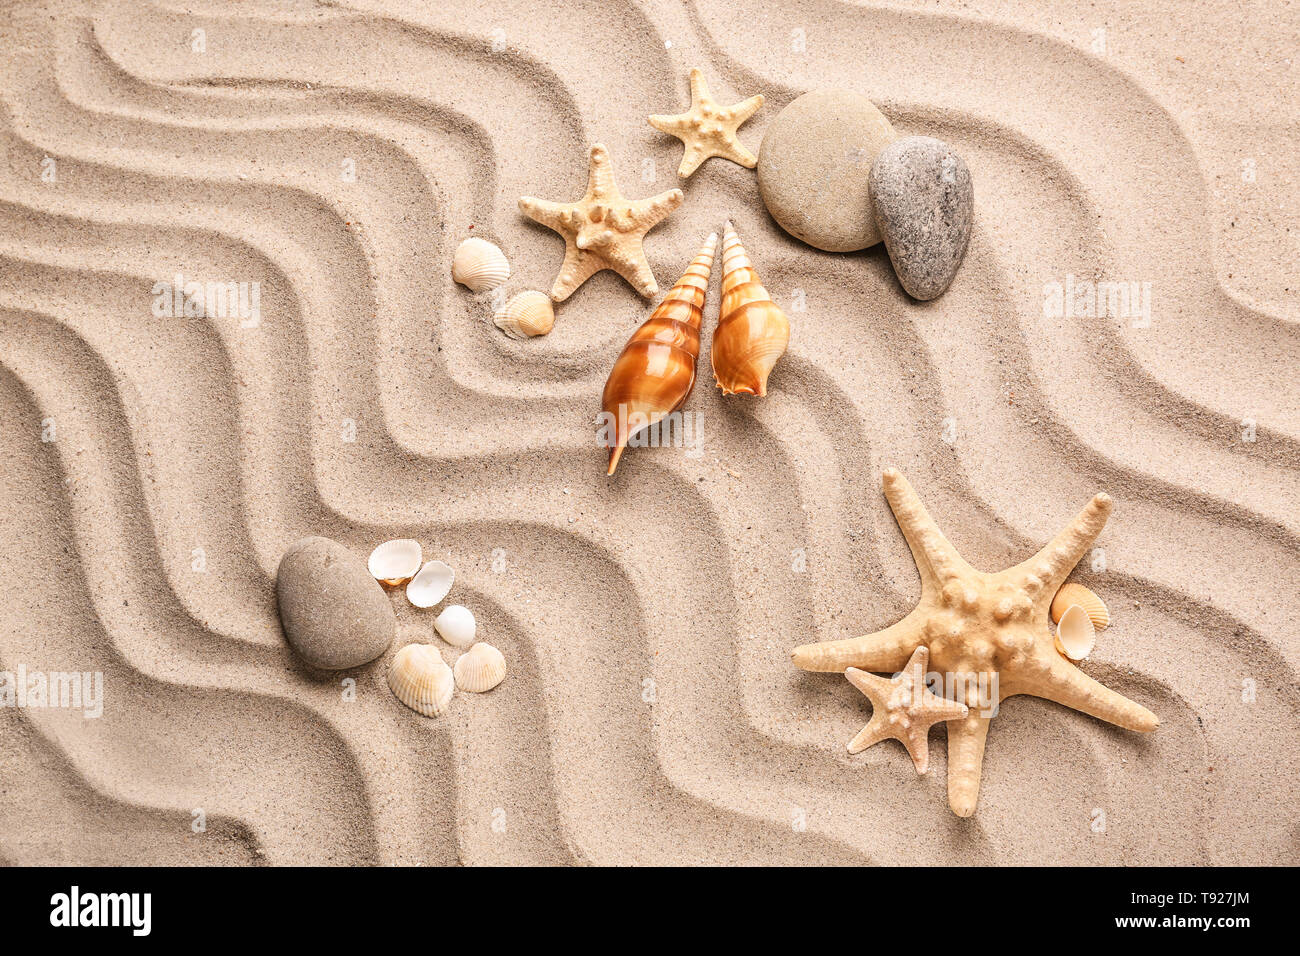 Different sea shells with starfishes and stones on sand - Stock Image